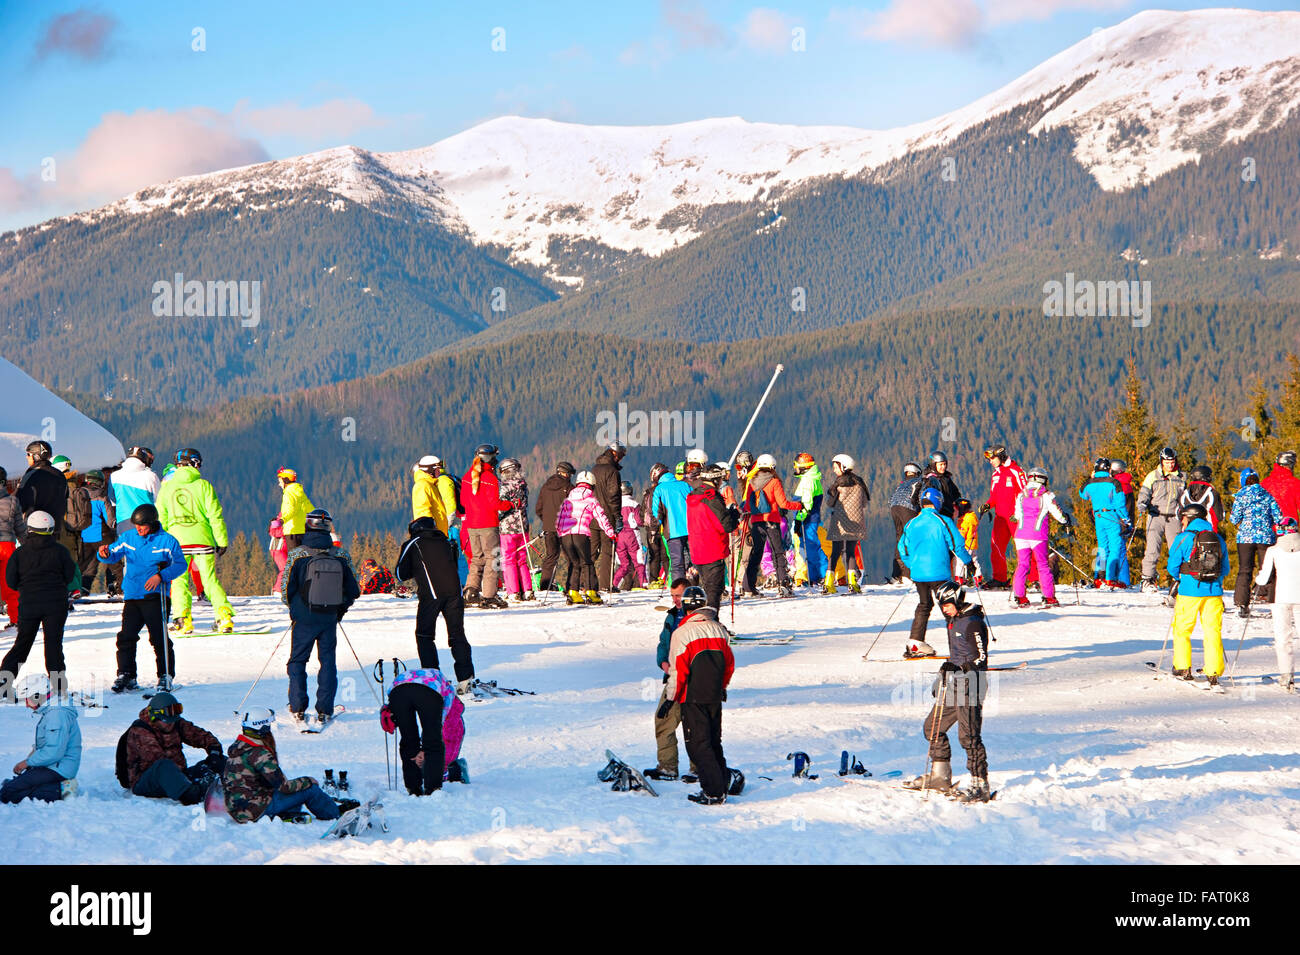 Lots of people at top of a slope in Bukovel. - Stock Image